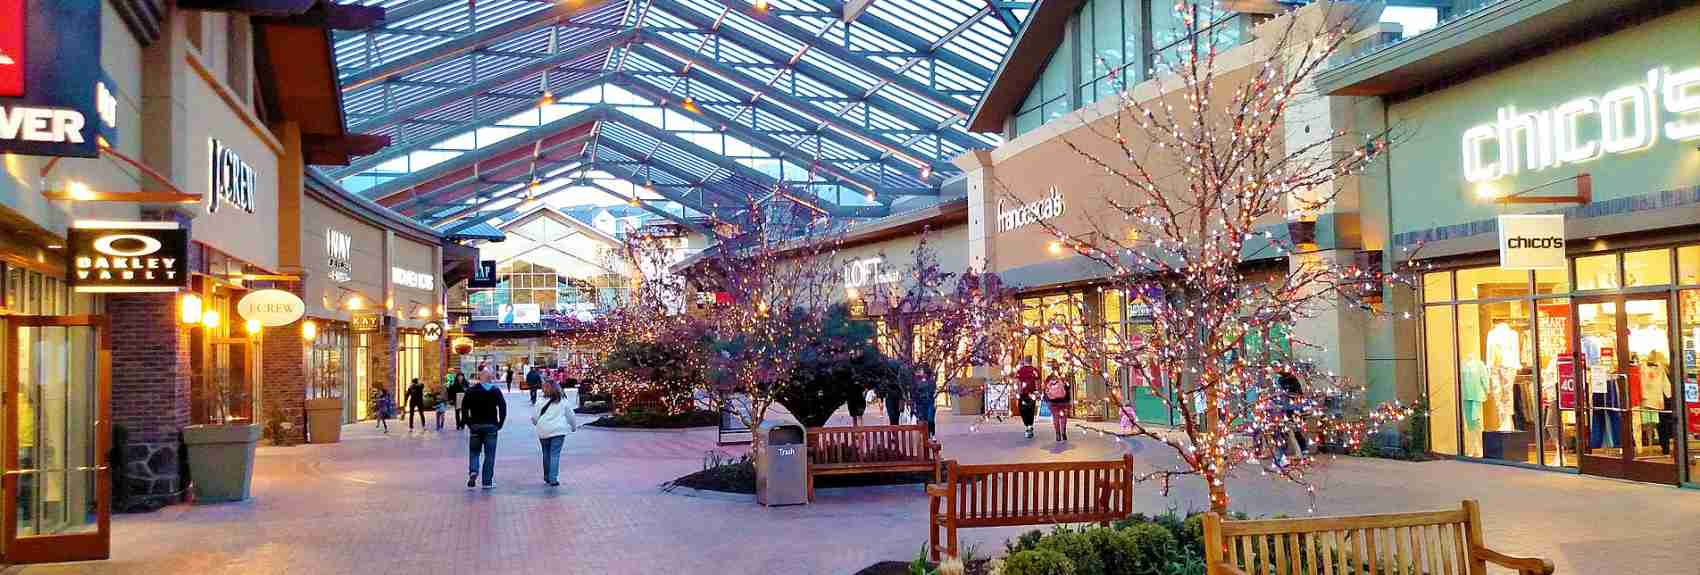 Traverse Mountain Outlets Shopping